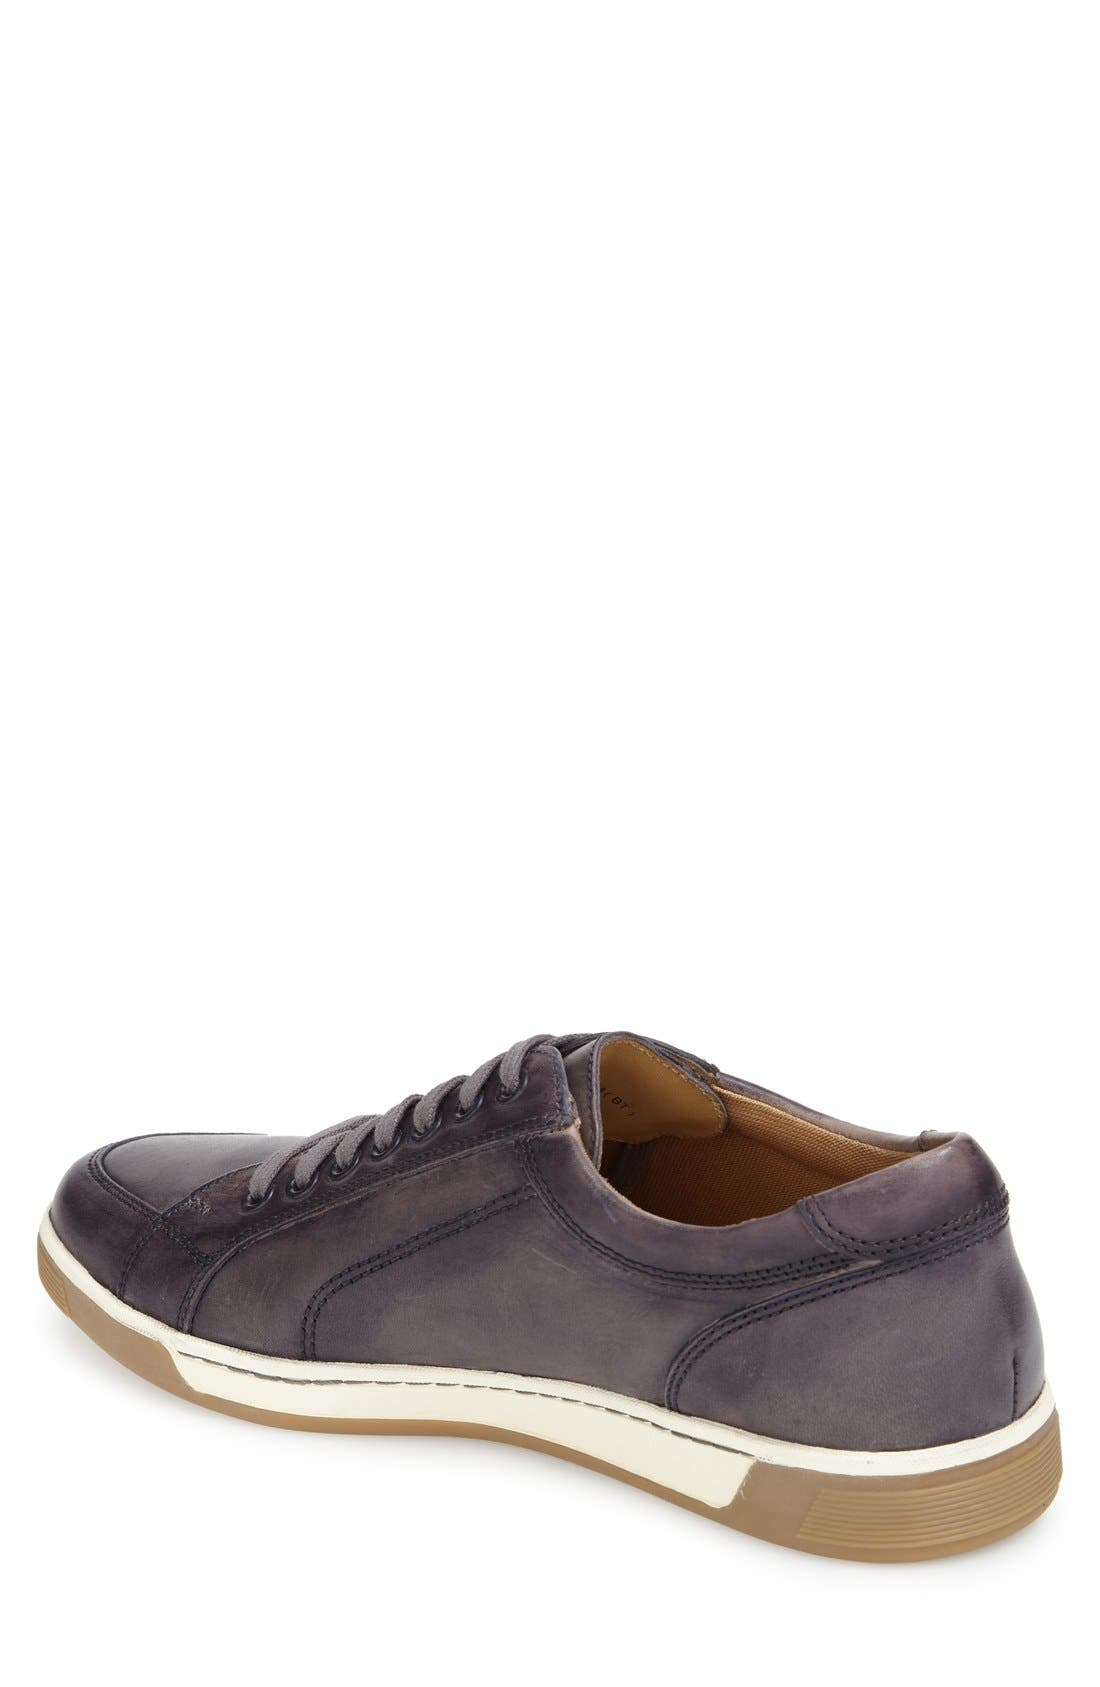 Alternate Image 2  - Cole Haan 'Vartan Sport Oxford' Sneaker (Men)